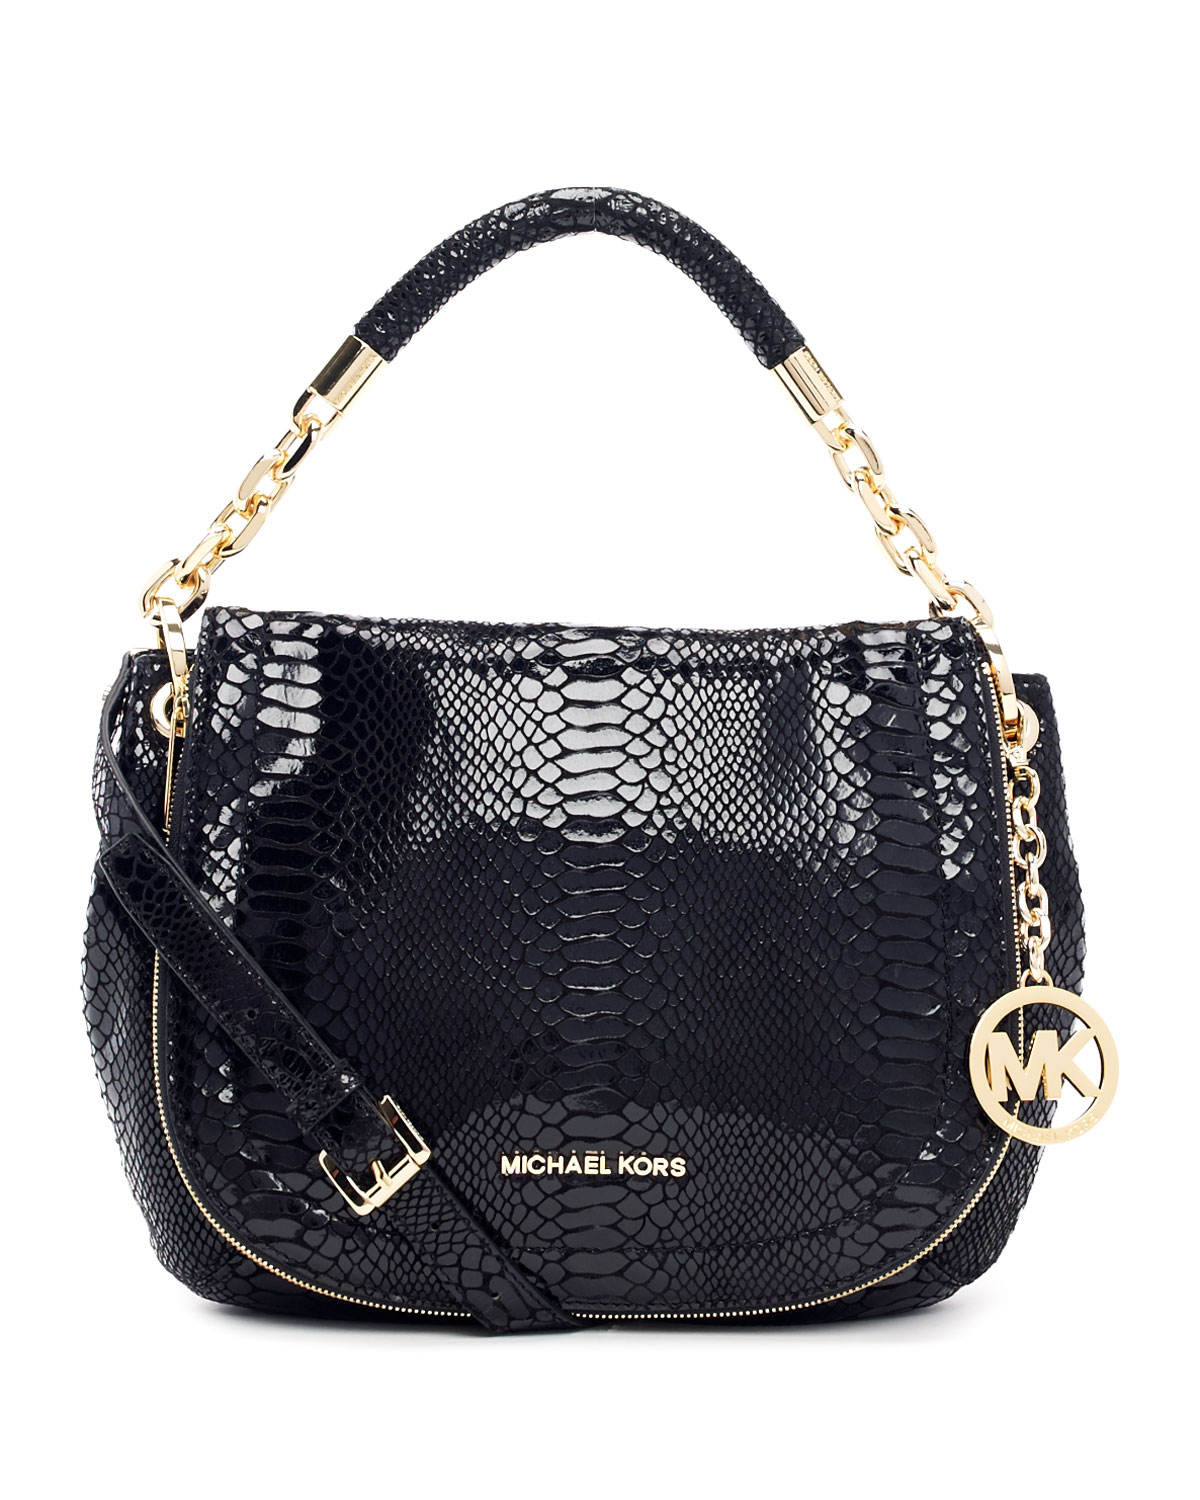 Today's top Michael Kors promo code: The Holiday Event! 25% Off Full Price Items + Up to 60% Off Sale. Get 50 Michael Kors promo codes and coupons for December